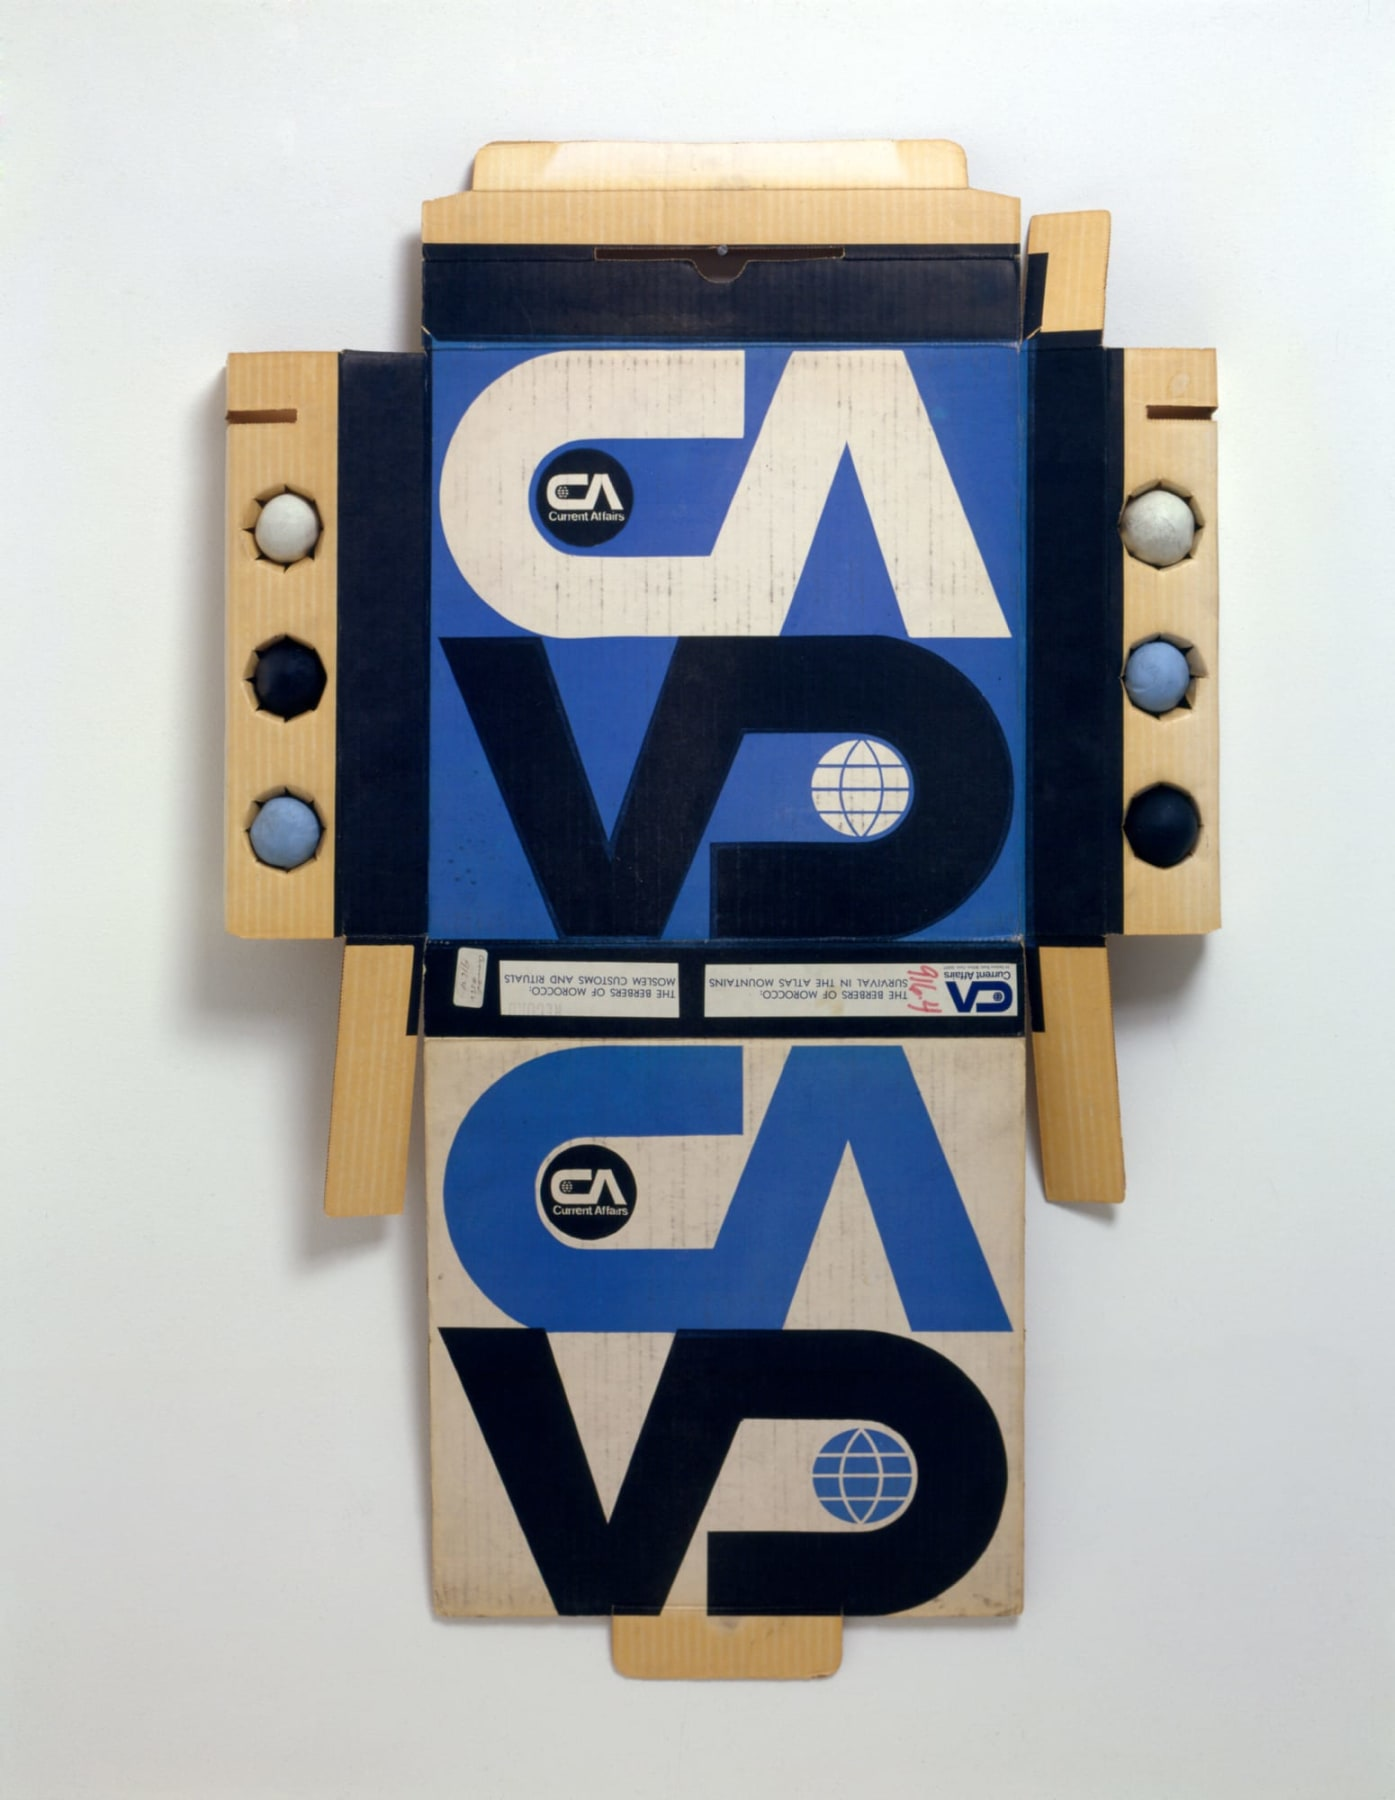 Cardboard packaging with a repeated logo printed in white, black and blue with the letters C A V D.